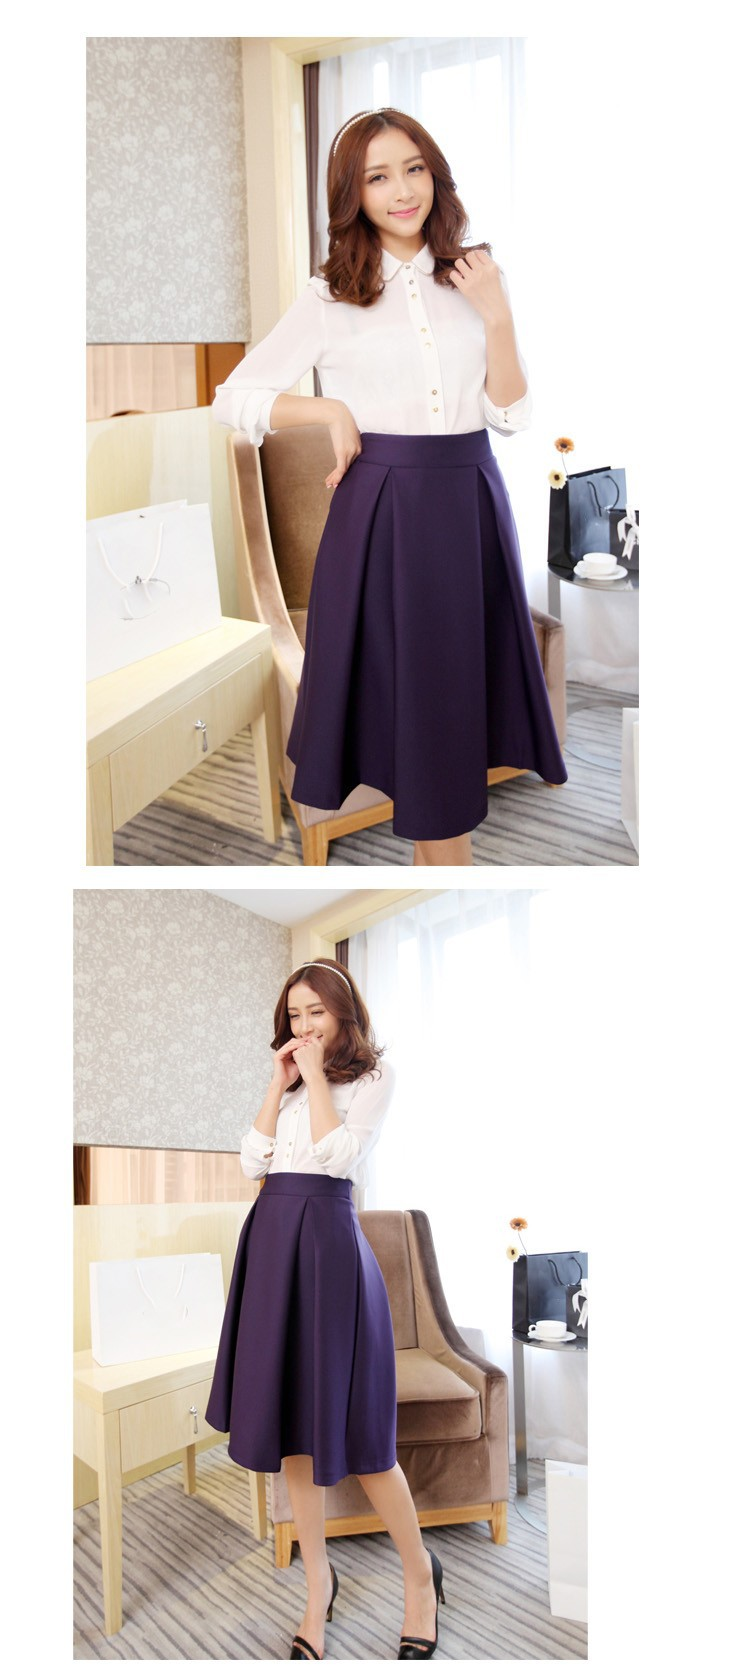 2016 Women Fashion Casual Plus Size Umbrella Skirts Vintage Expansion Pleated Skirt Candy Color Casual Knee Length Midi Skirt